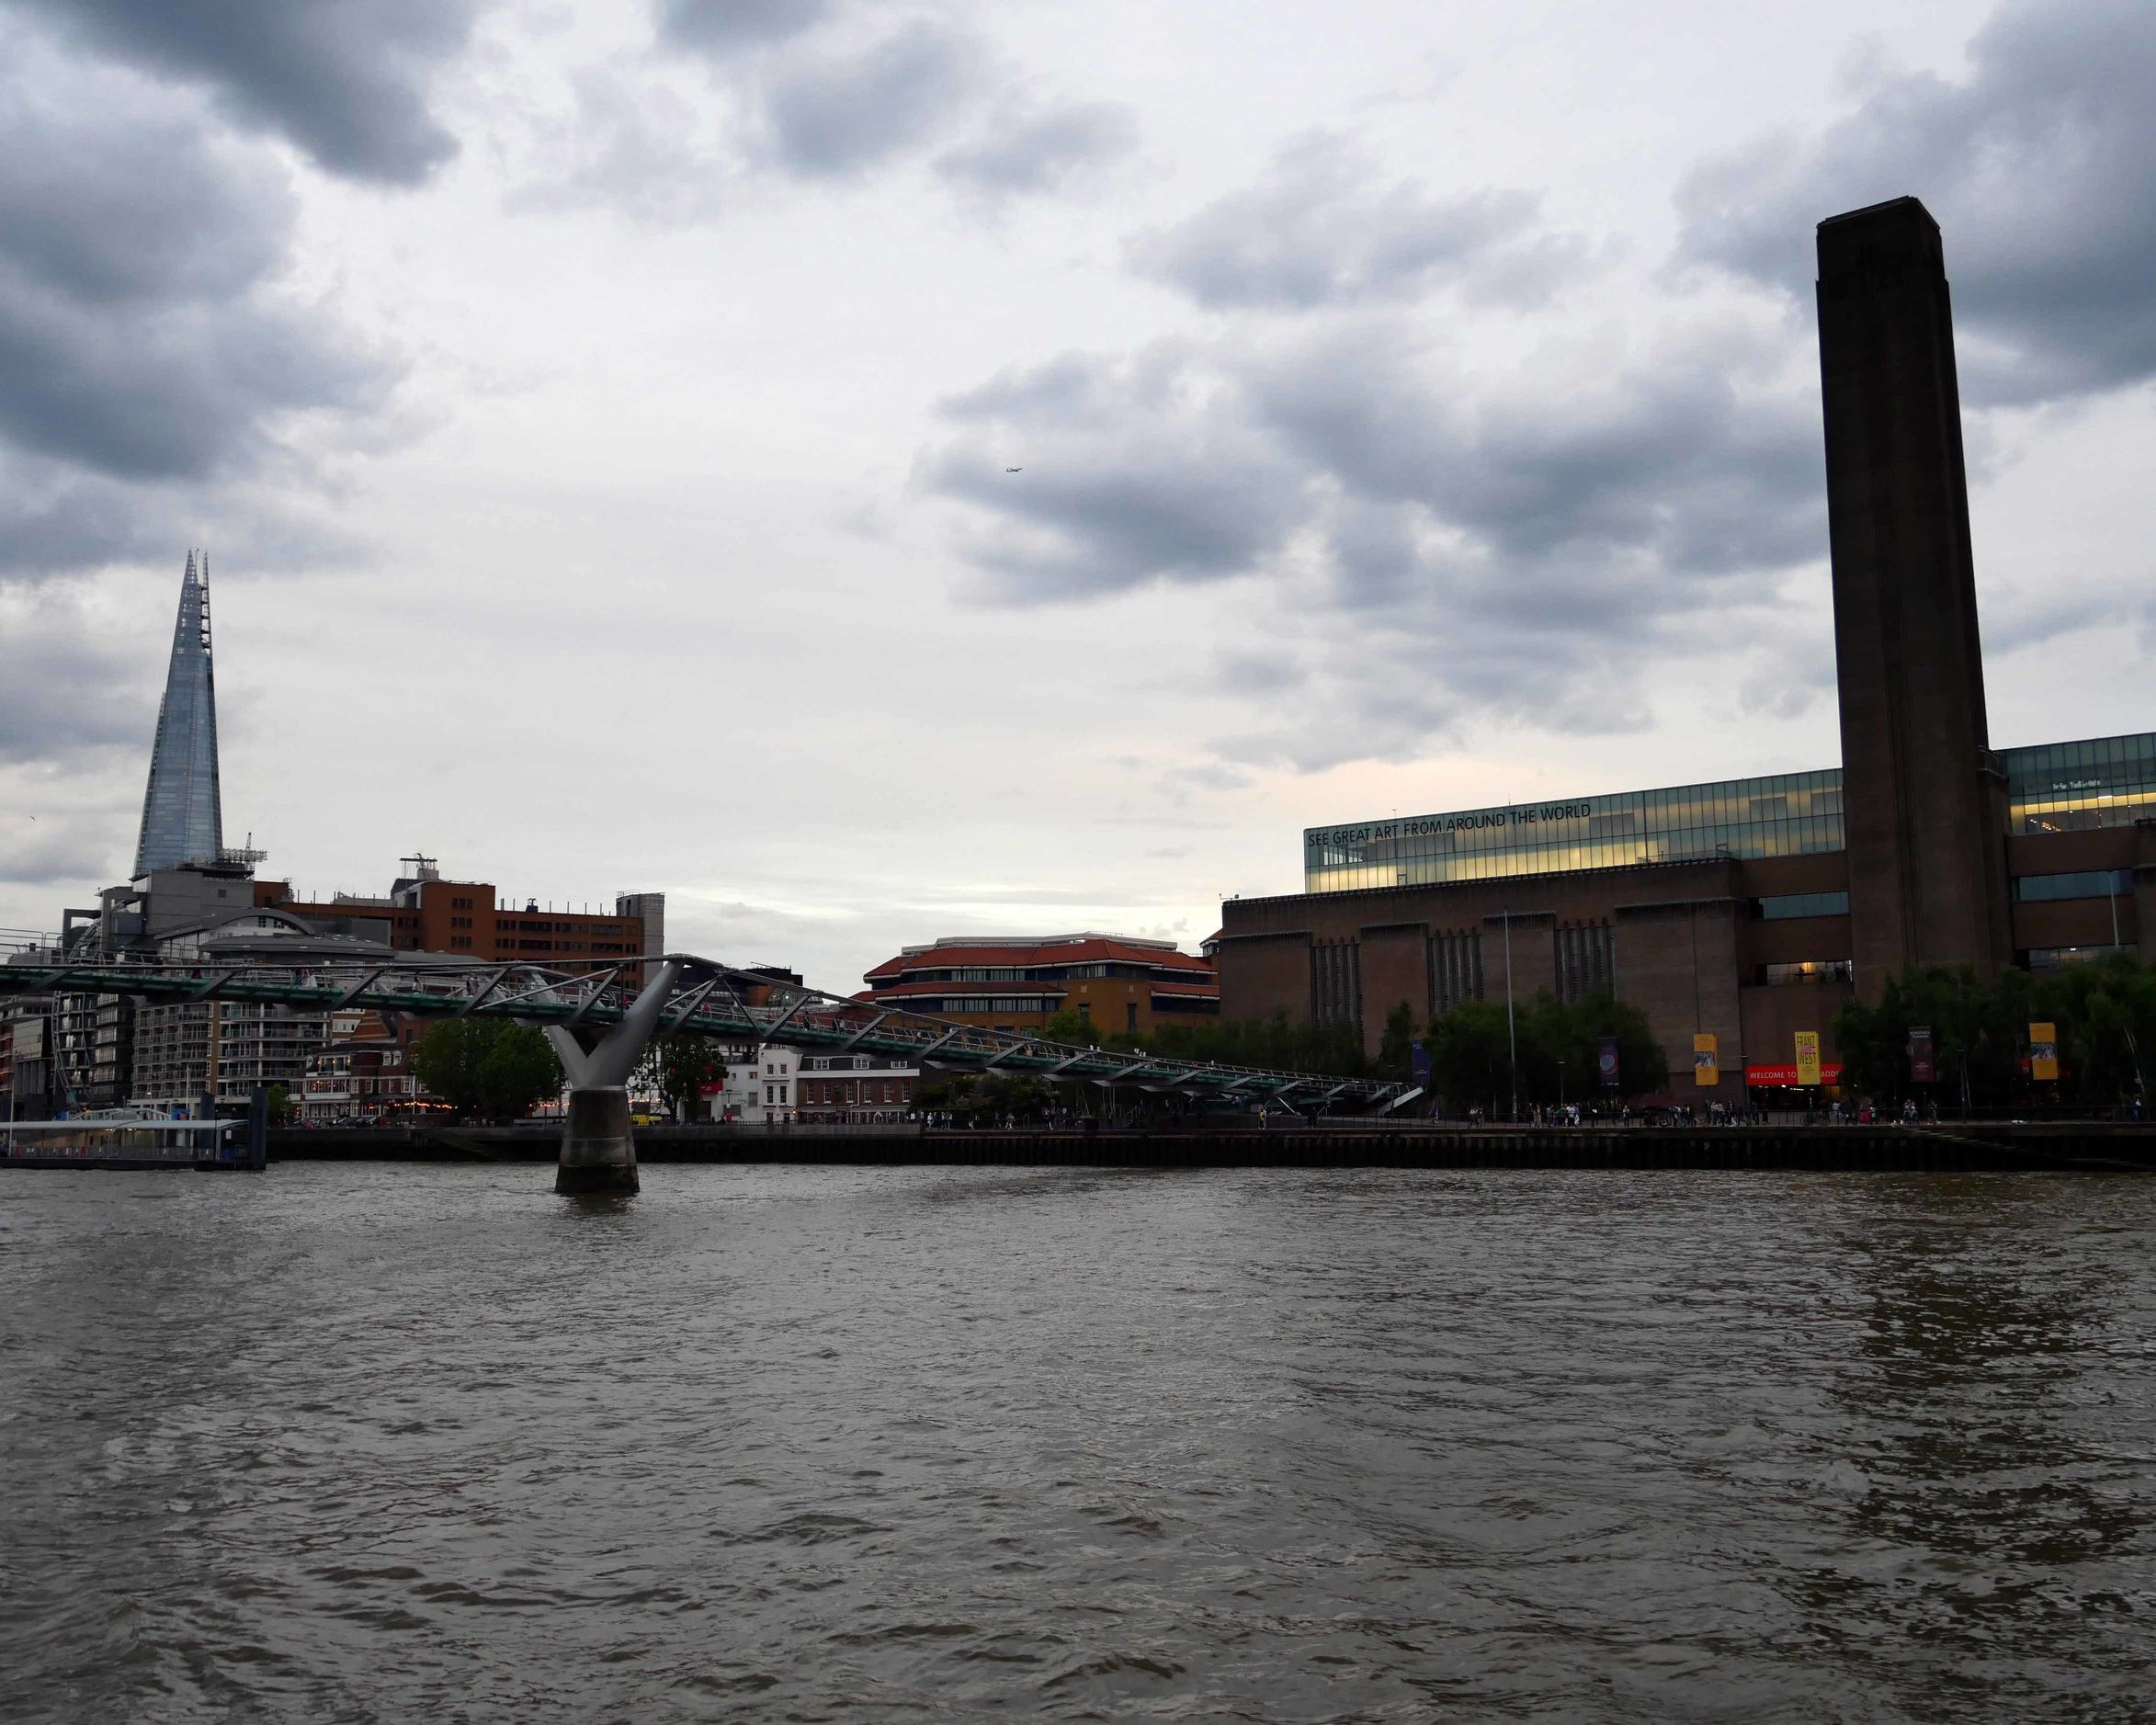 Views on Tate Modern and Millennium Bridge from a London boat party